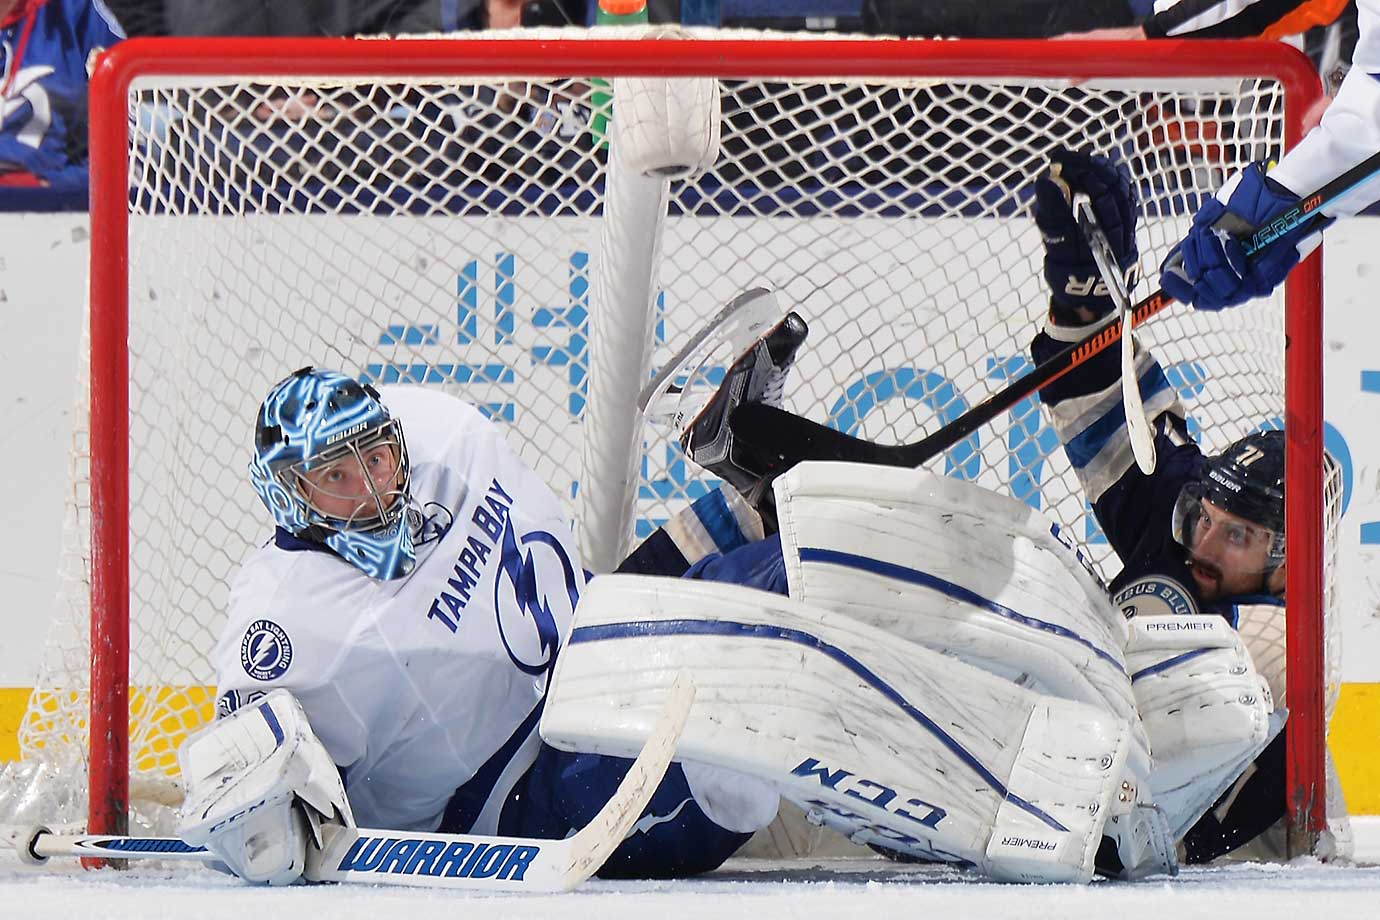 Goaltender Ben Bishop of Tampa Bay and Nick Foligno of Columbus collide into the net.